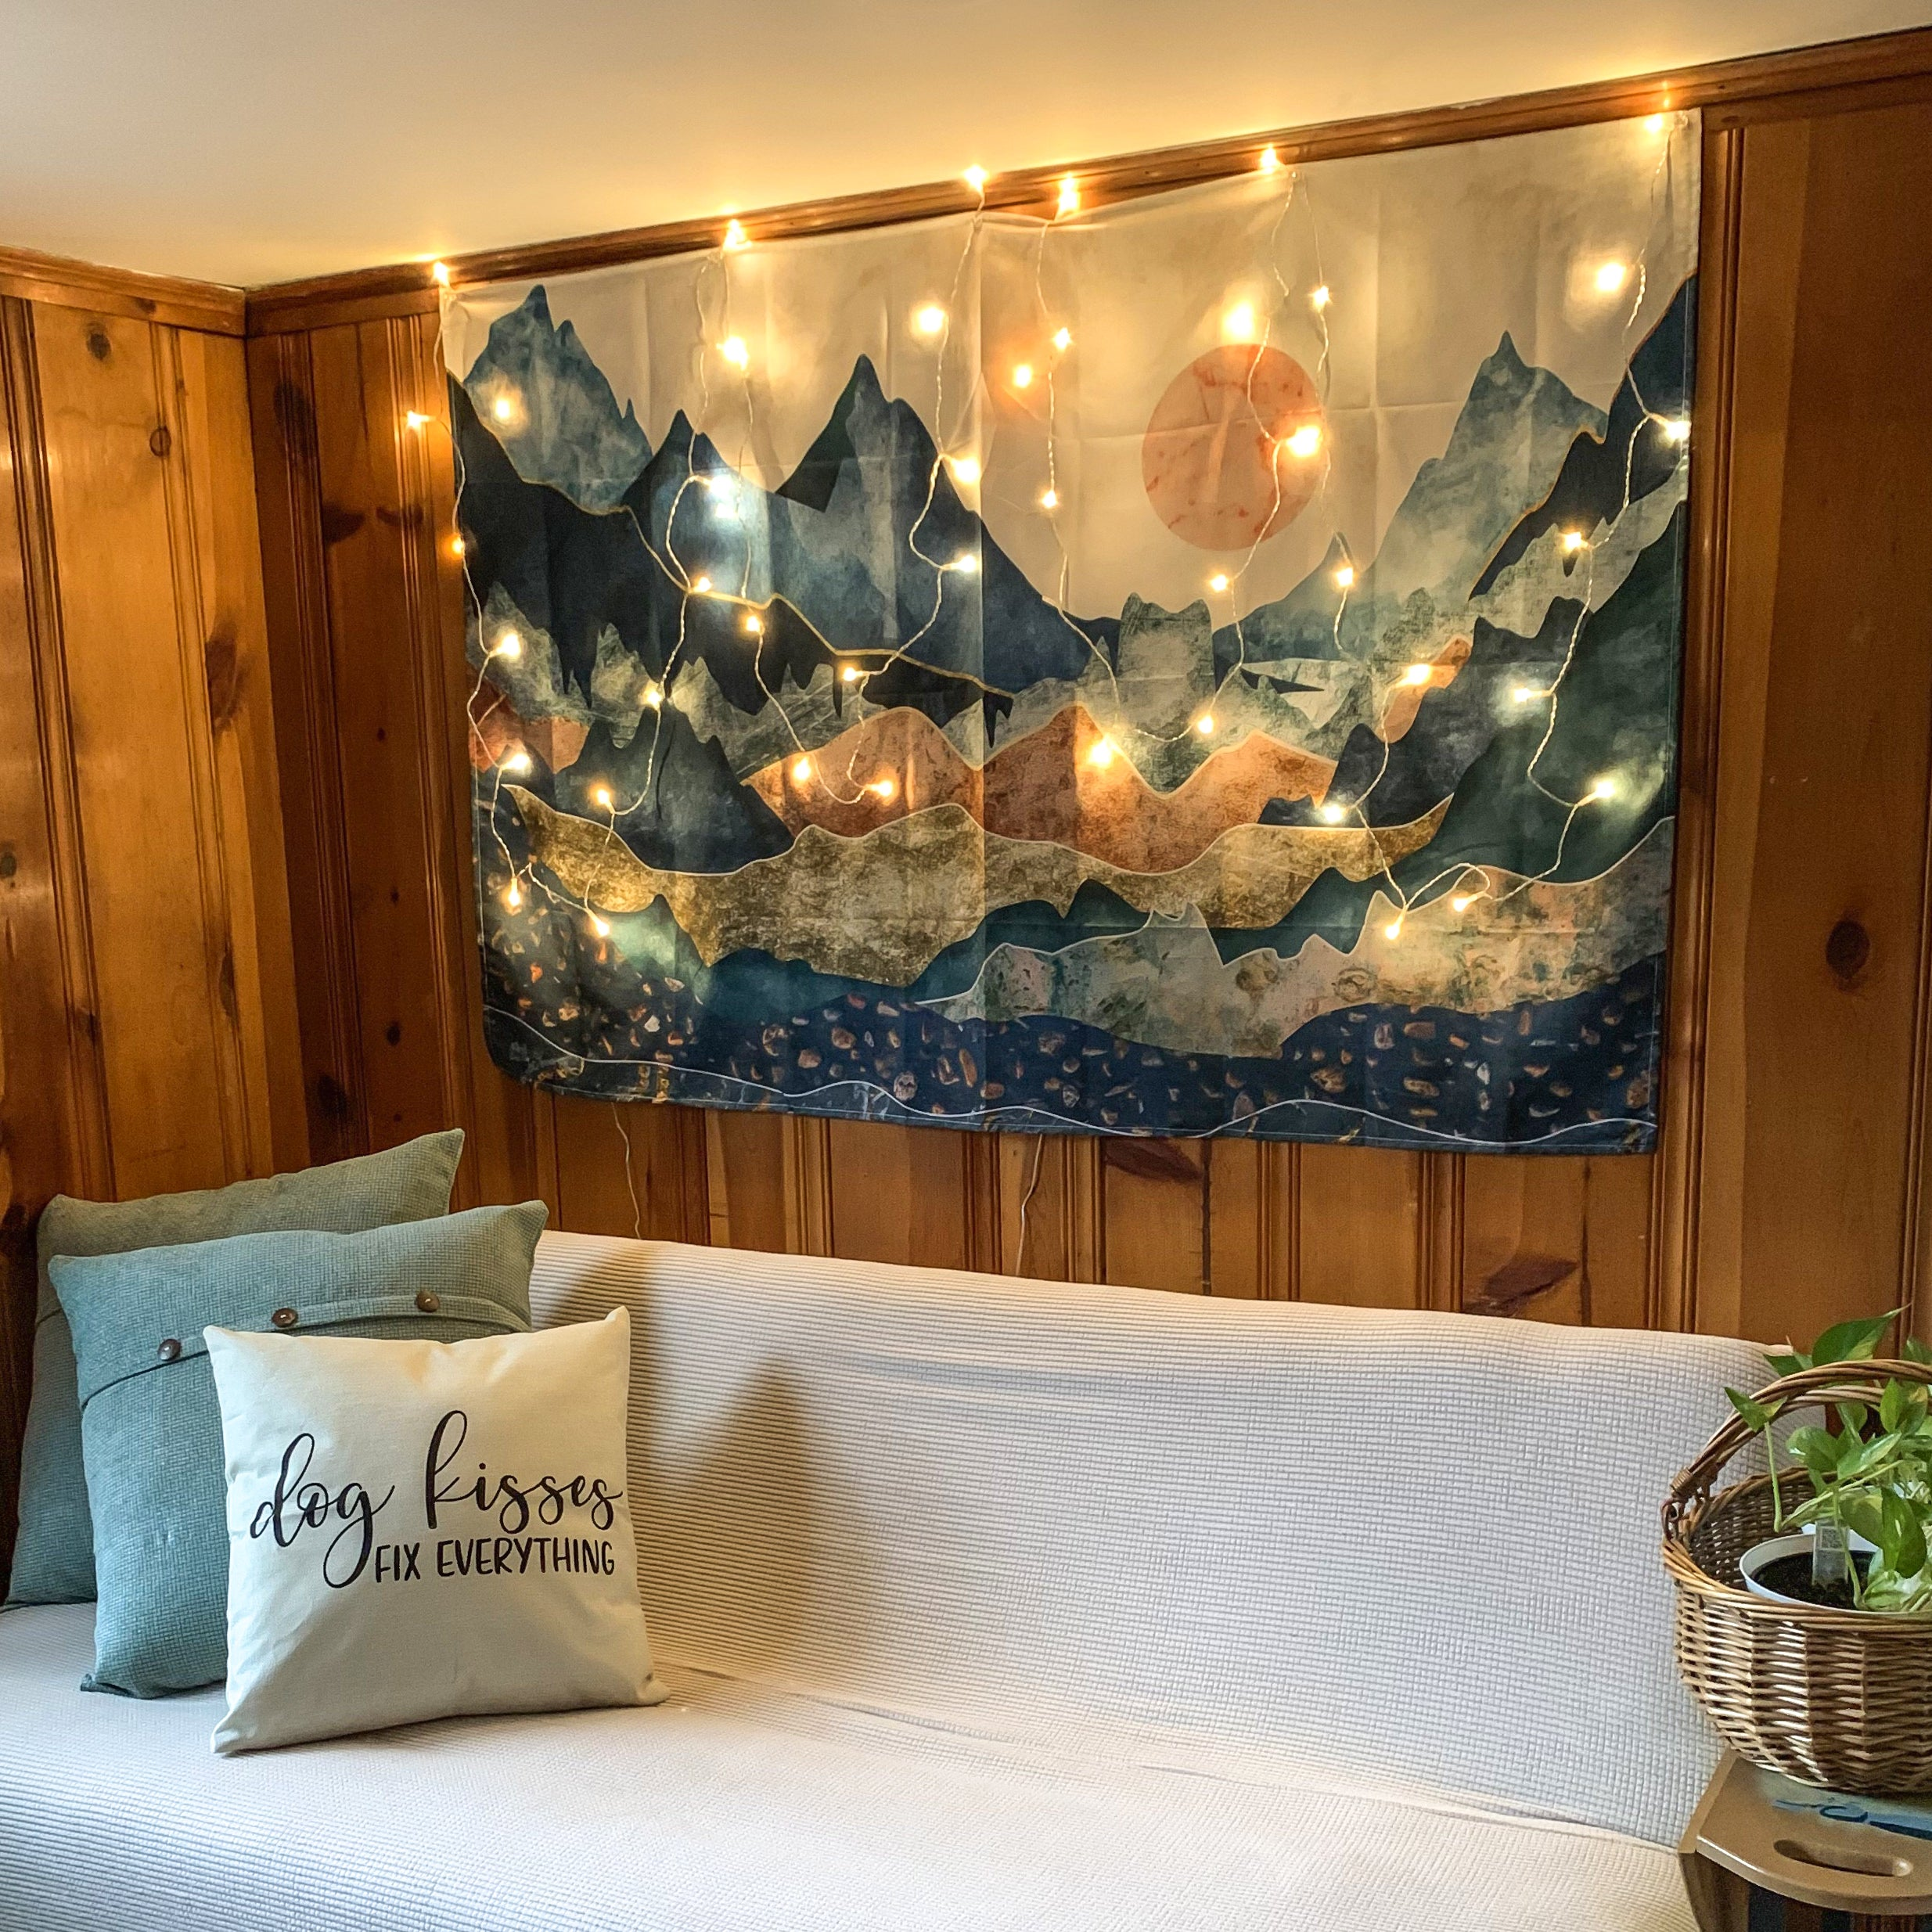 Boho Wall Decor with Decorative Lights on Wooden Wall | Brandless Artist